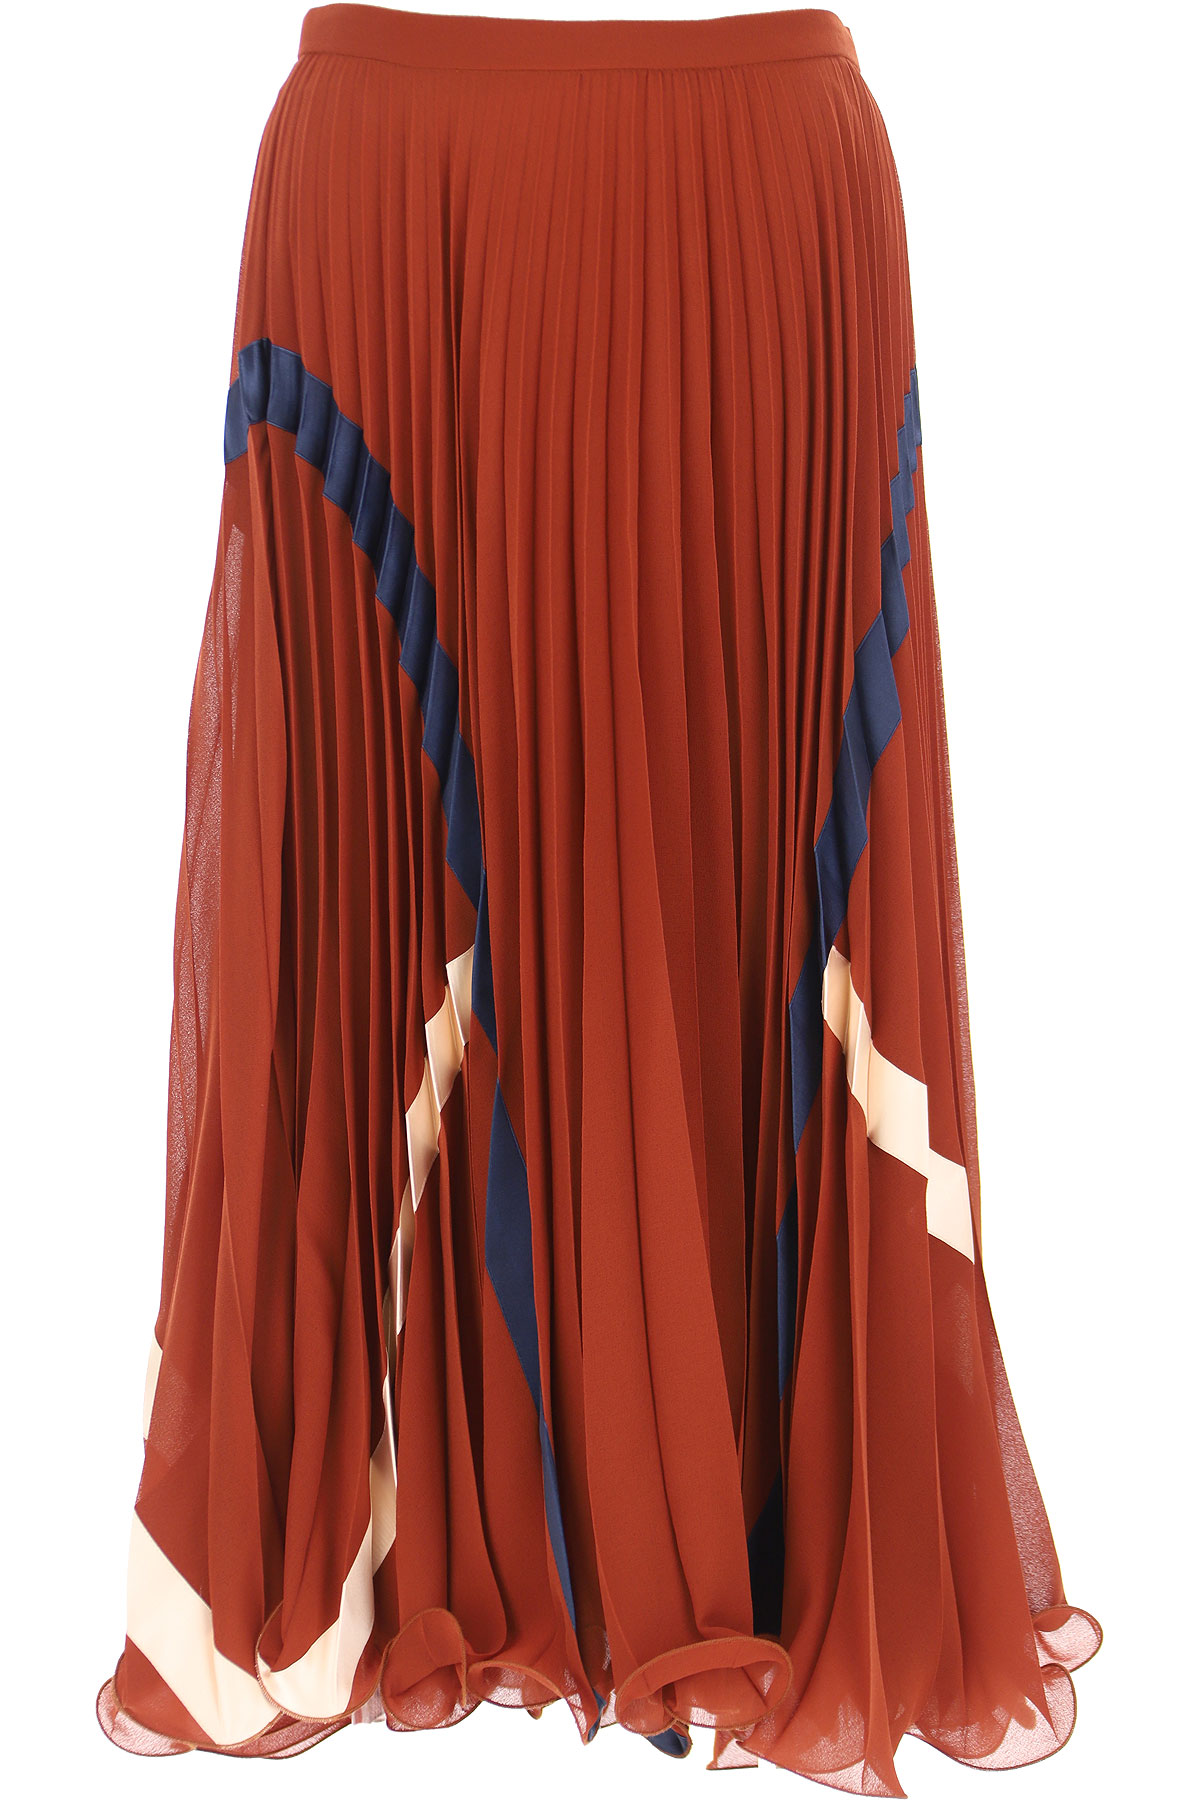 See By Chloe Skirt for Women, Brown, polyester, 2019, 24 26